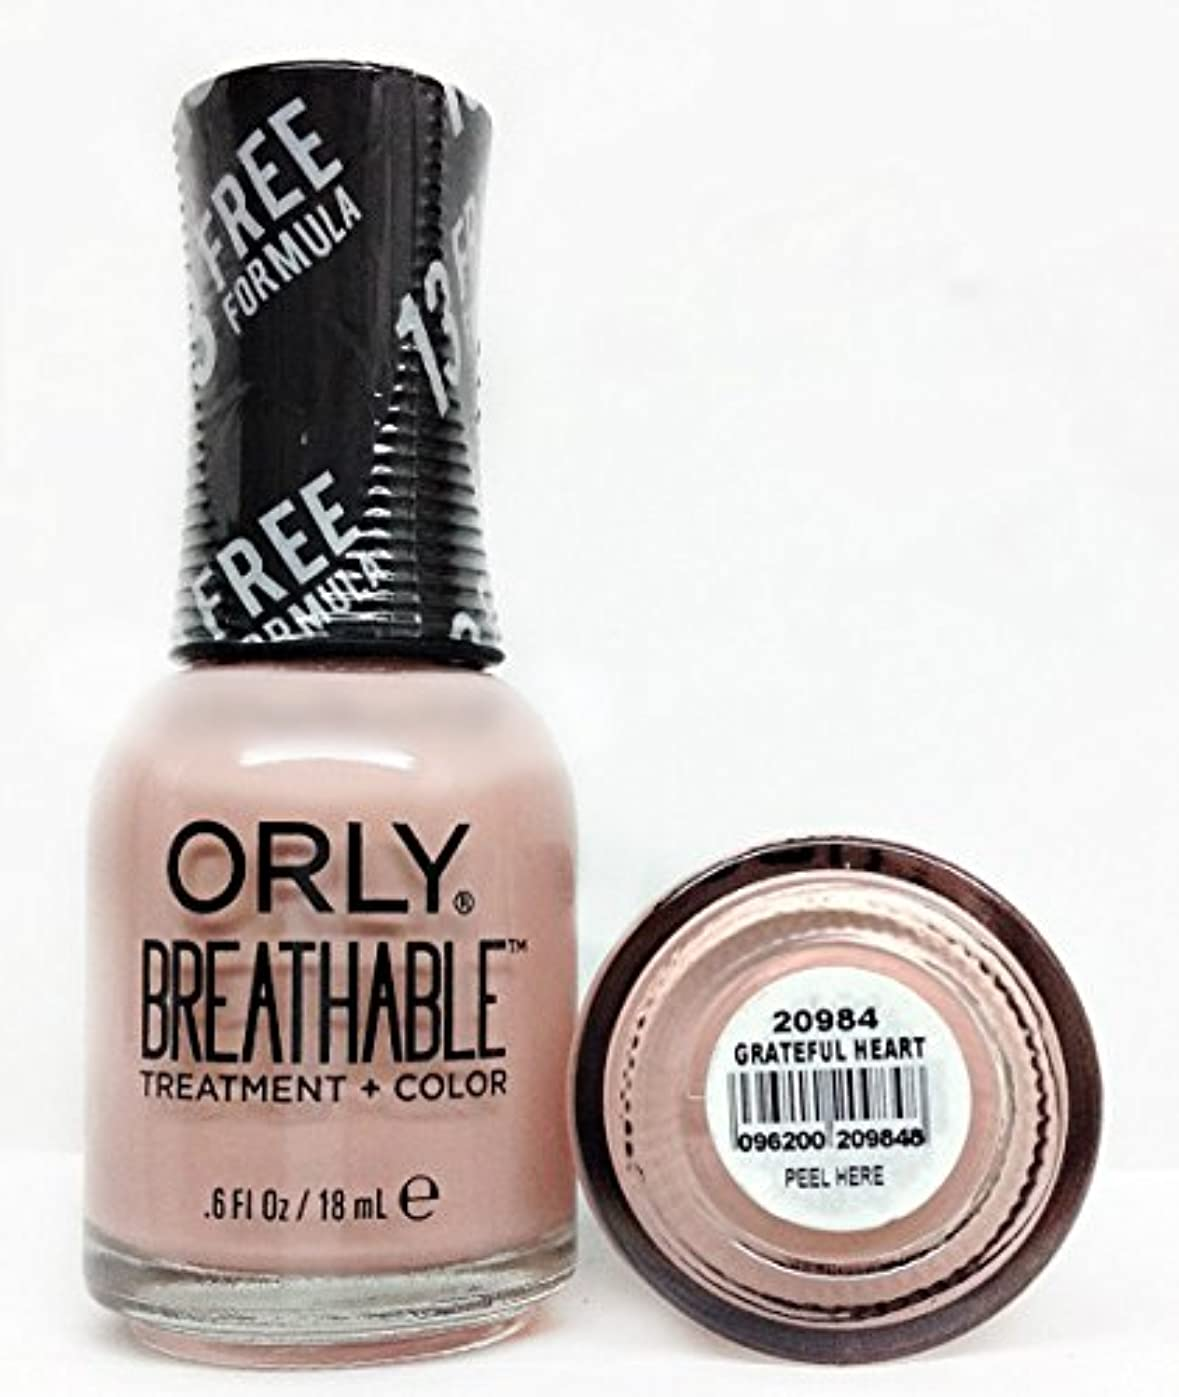 候補者ベギン辛いOrly Breathable Nail Lacquer - Treatment + Color - Grateful Heart - 0.6 oz / 18 mL